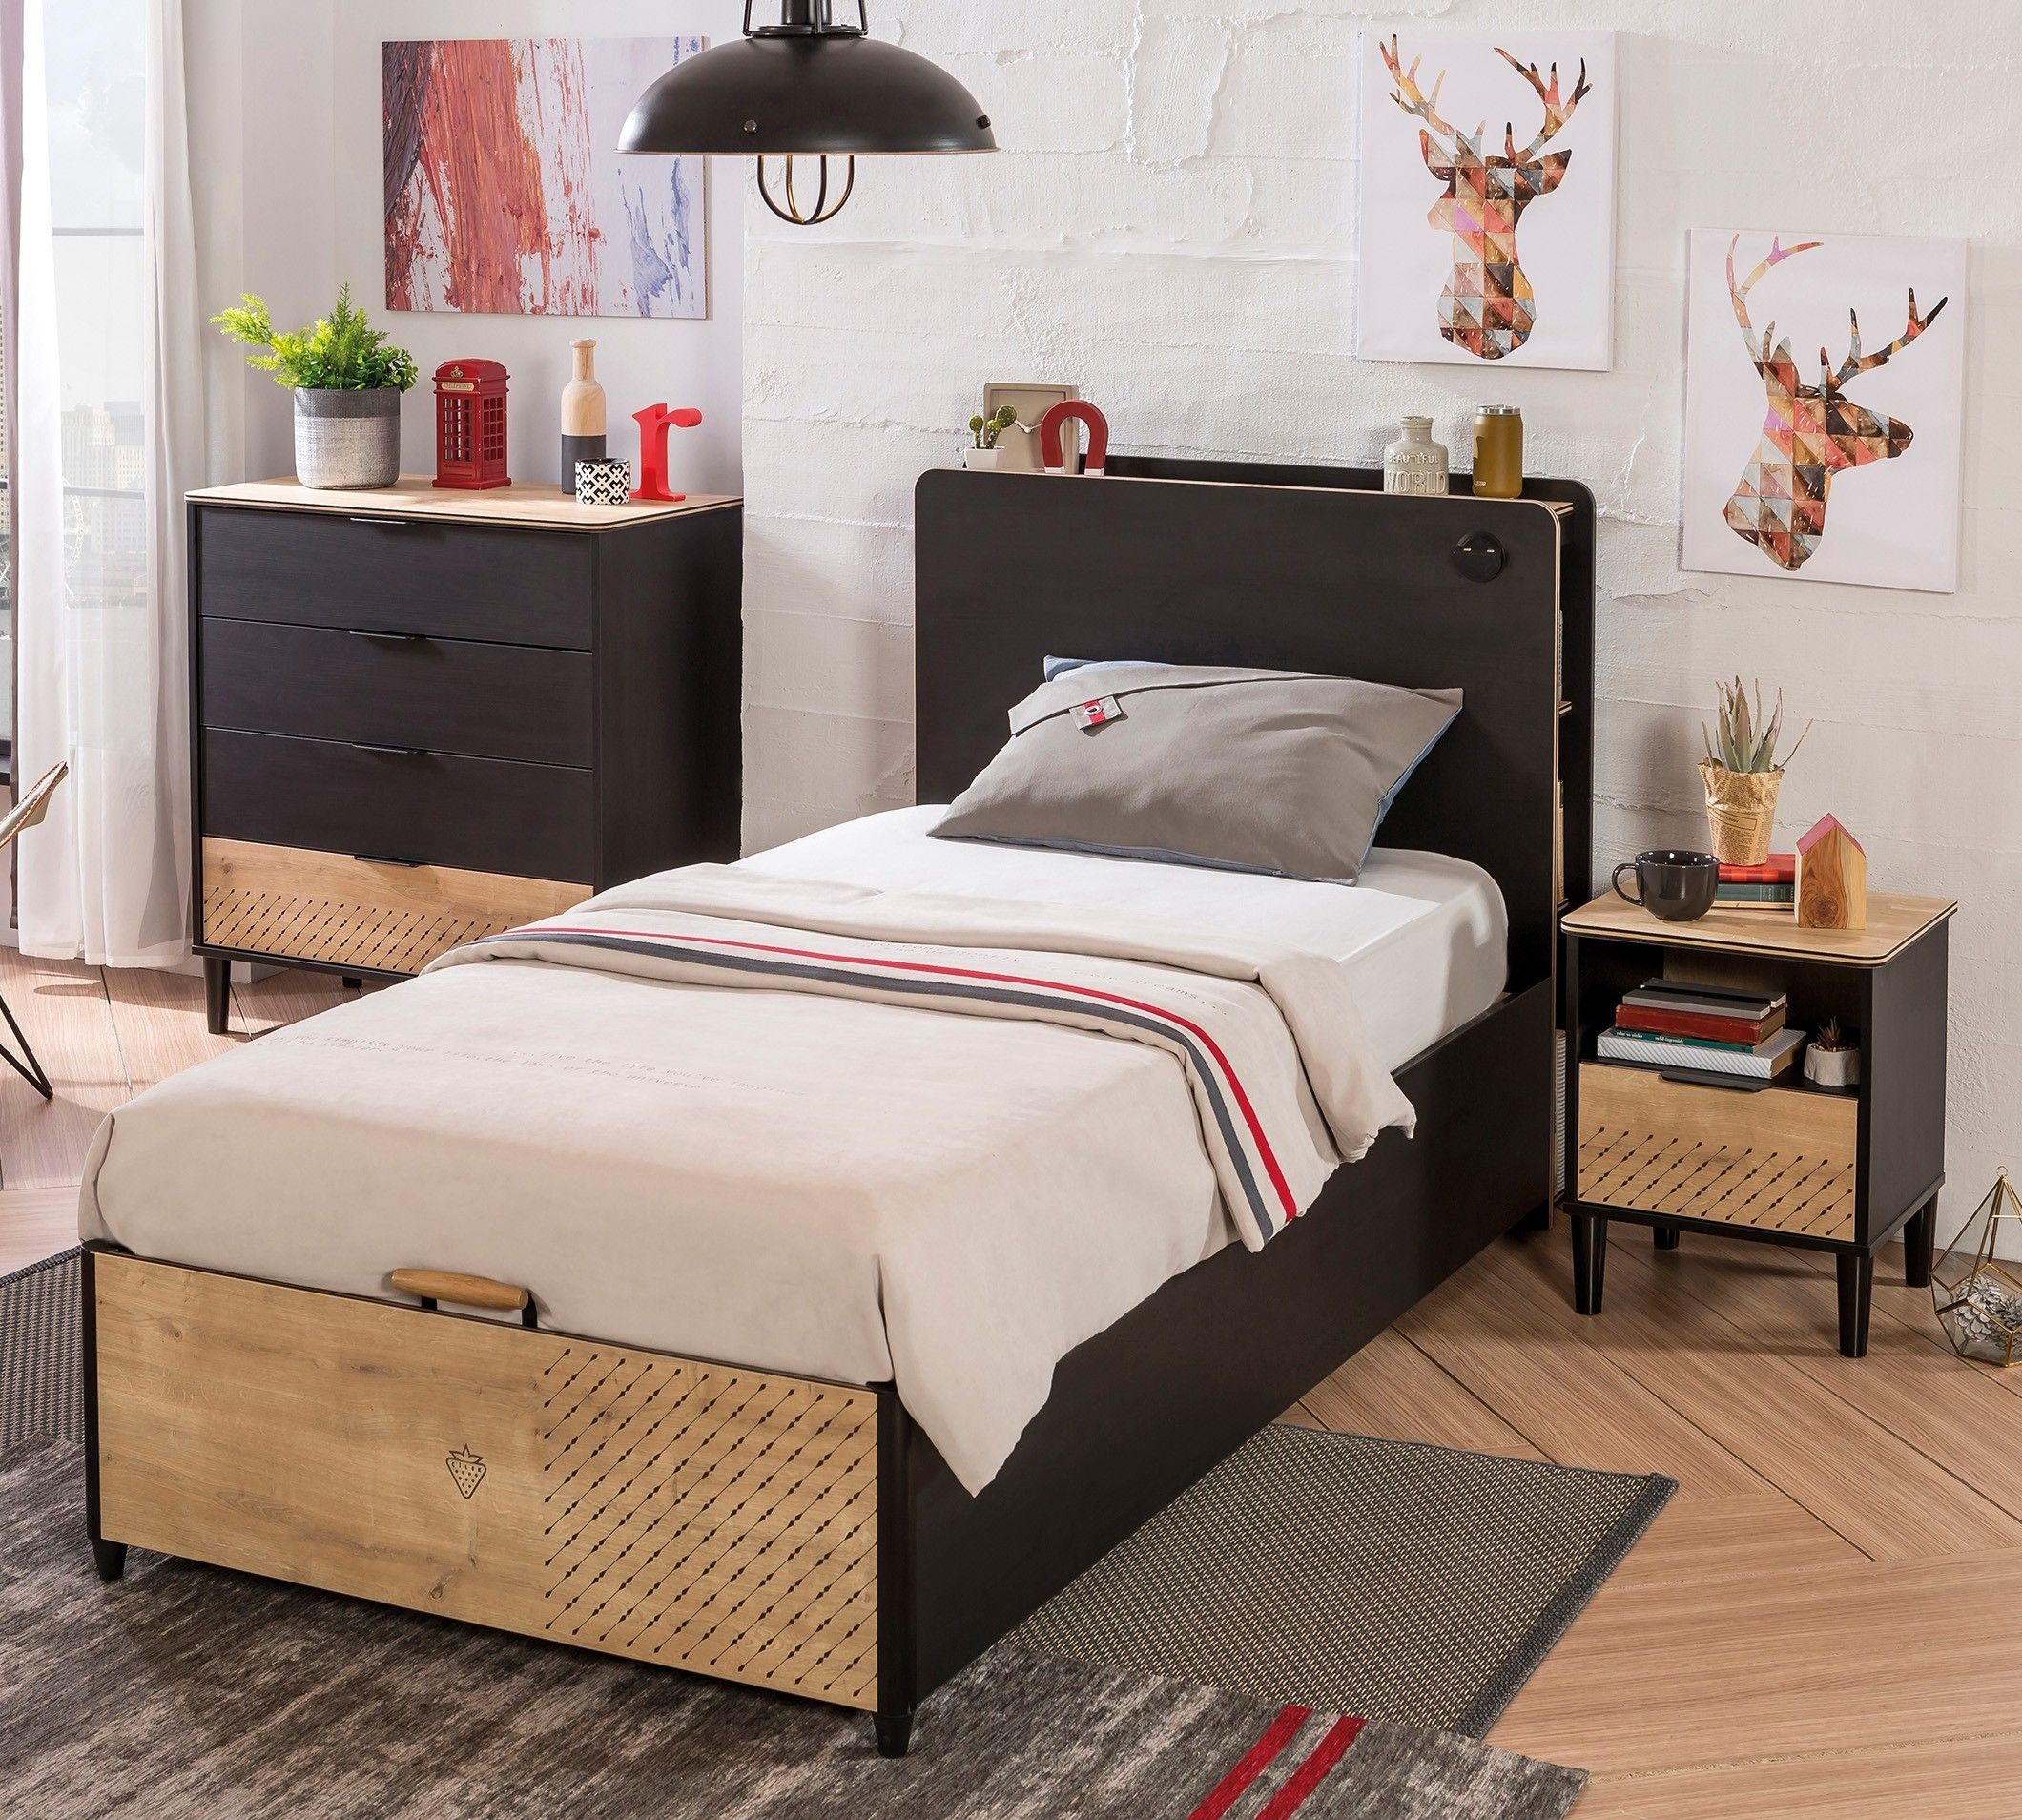 New York tienerbed kinderbed boxspring opbergbed bed